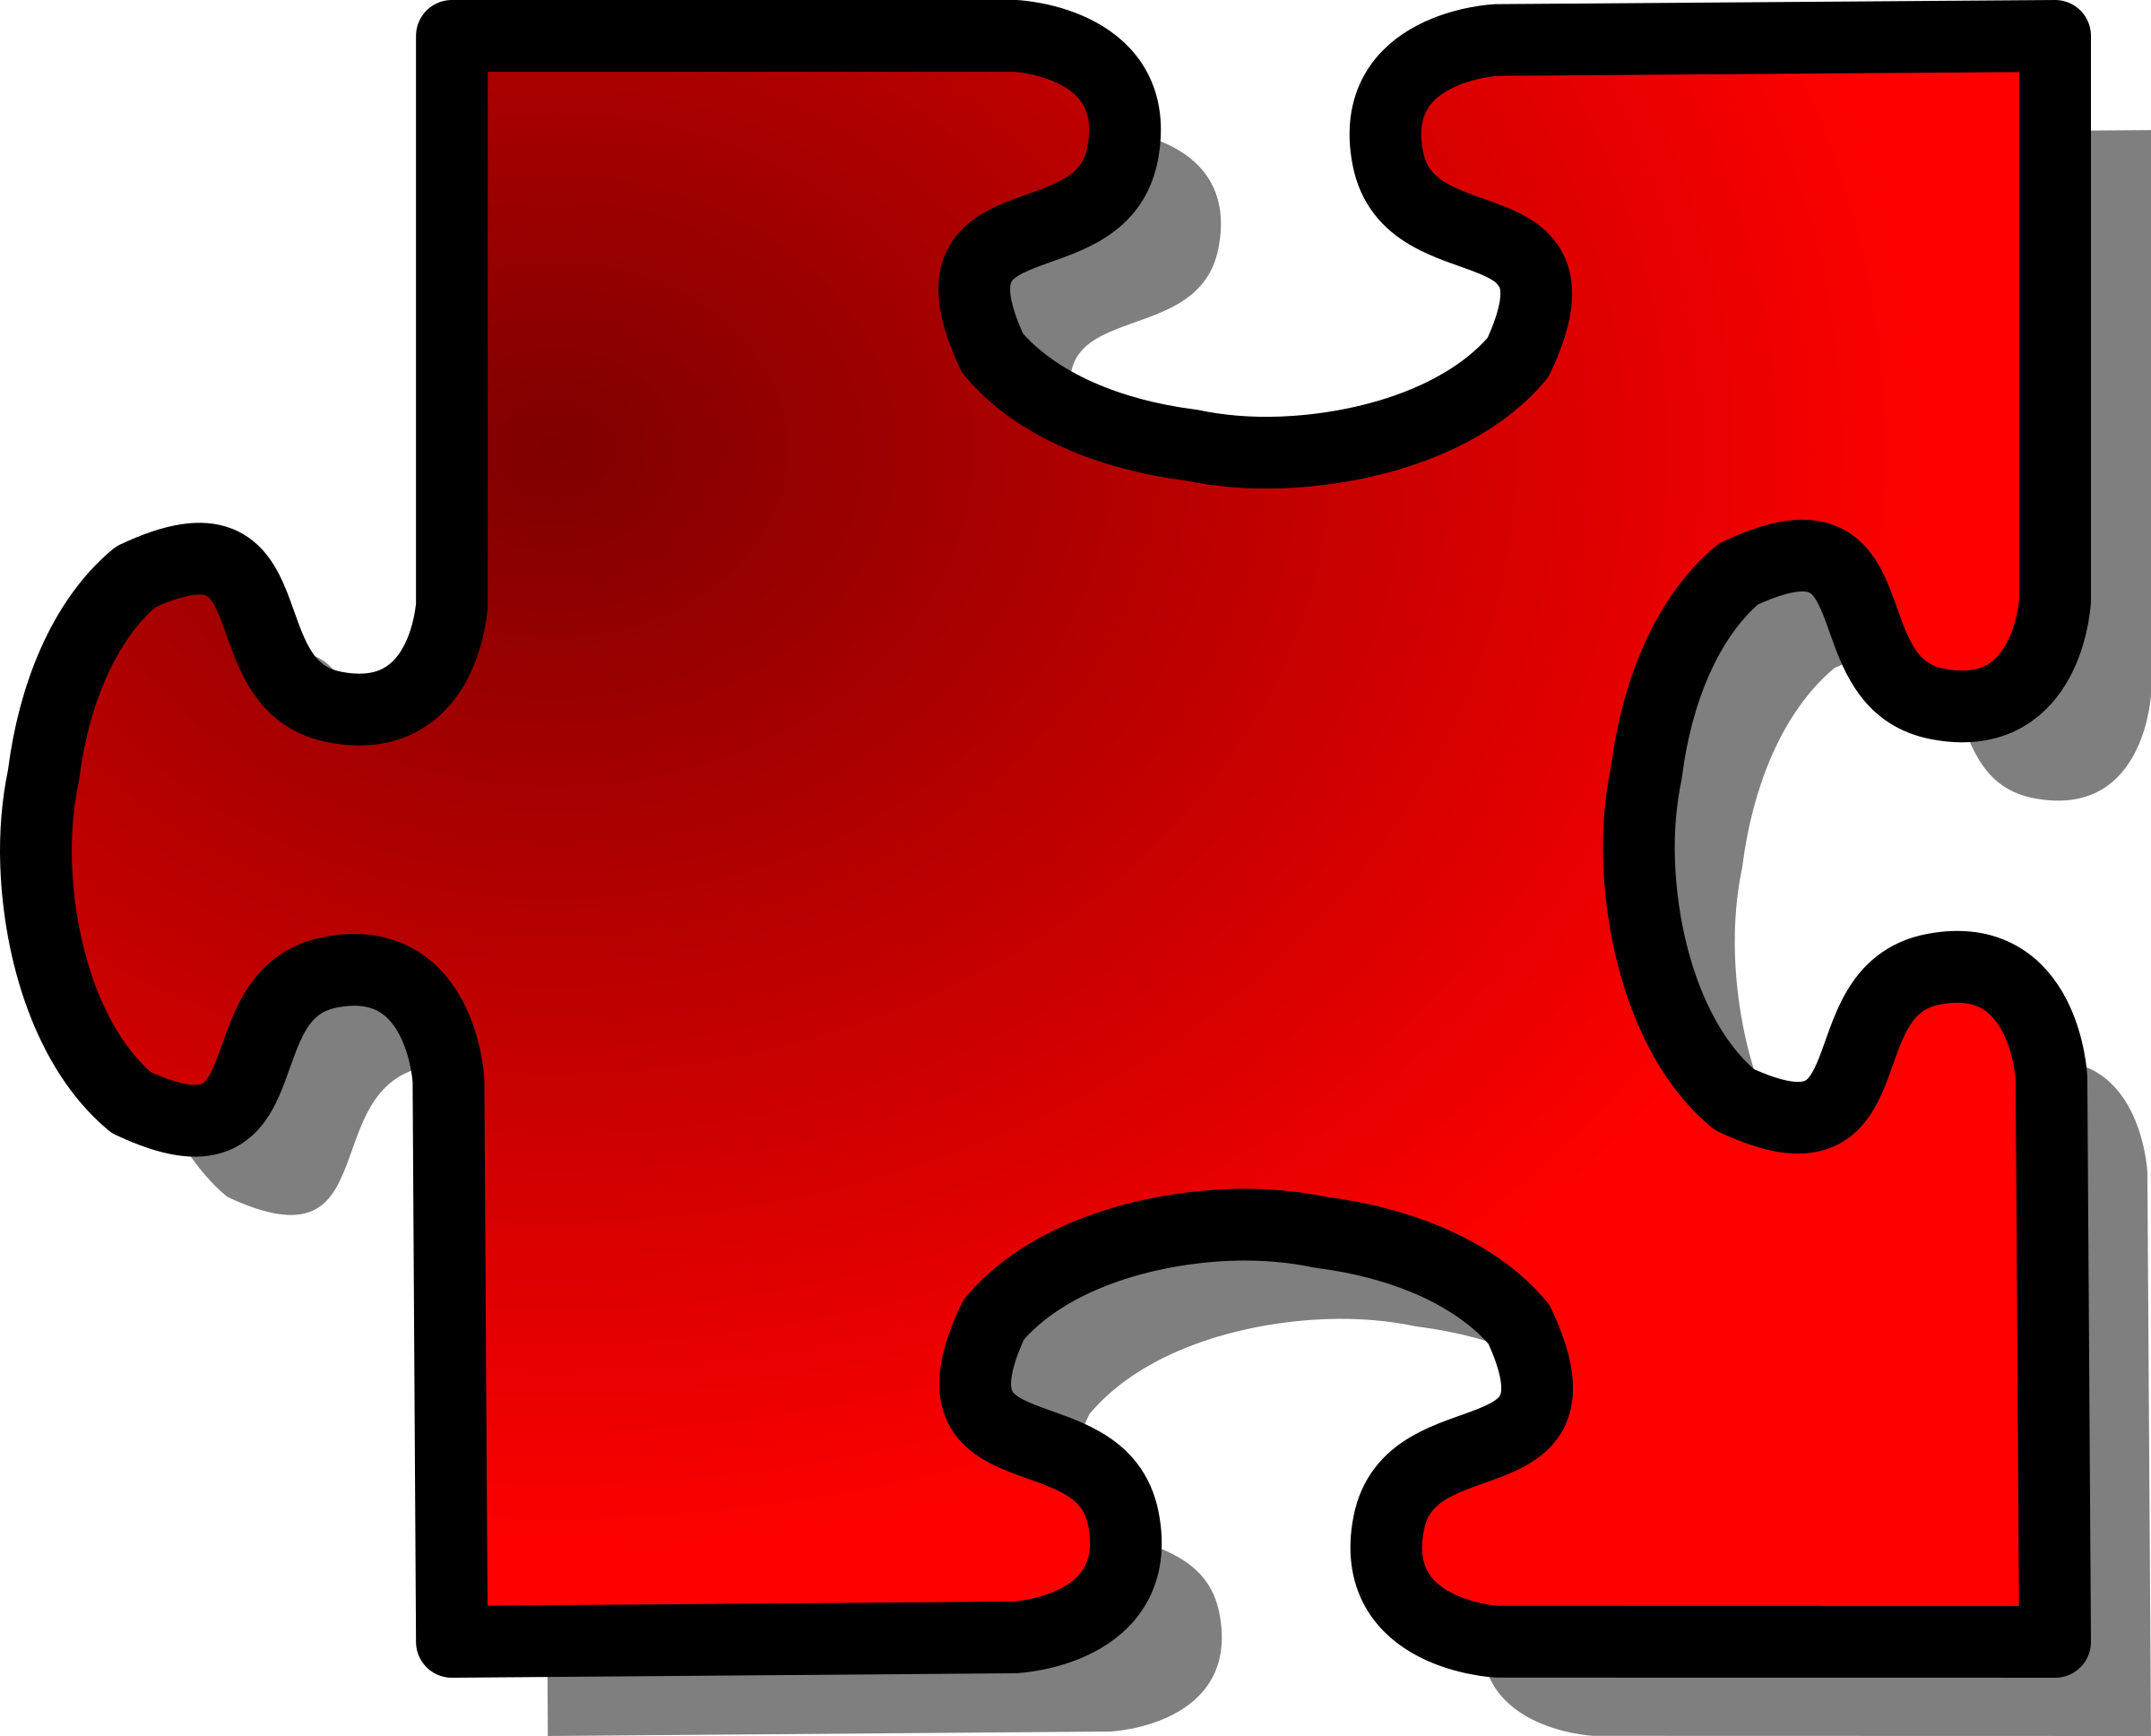 Red Jigsaw piece 16 by nicubunu